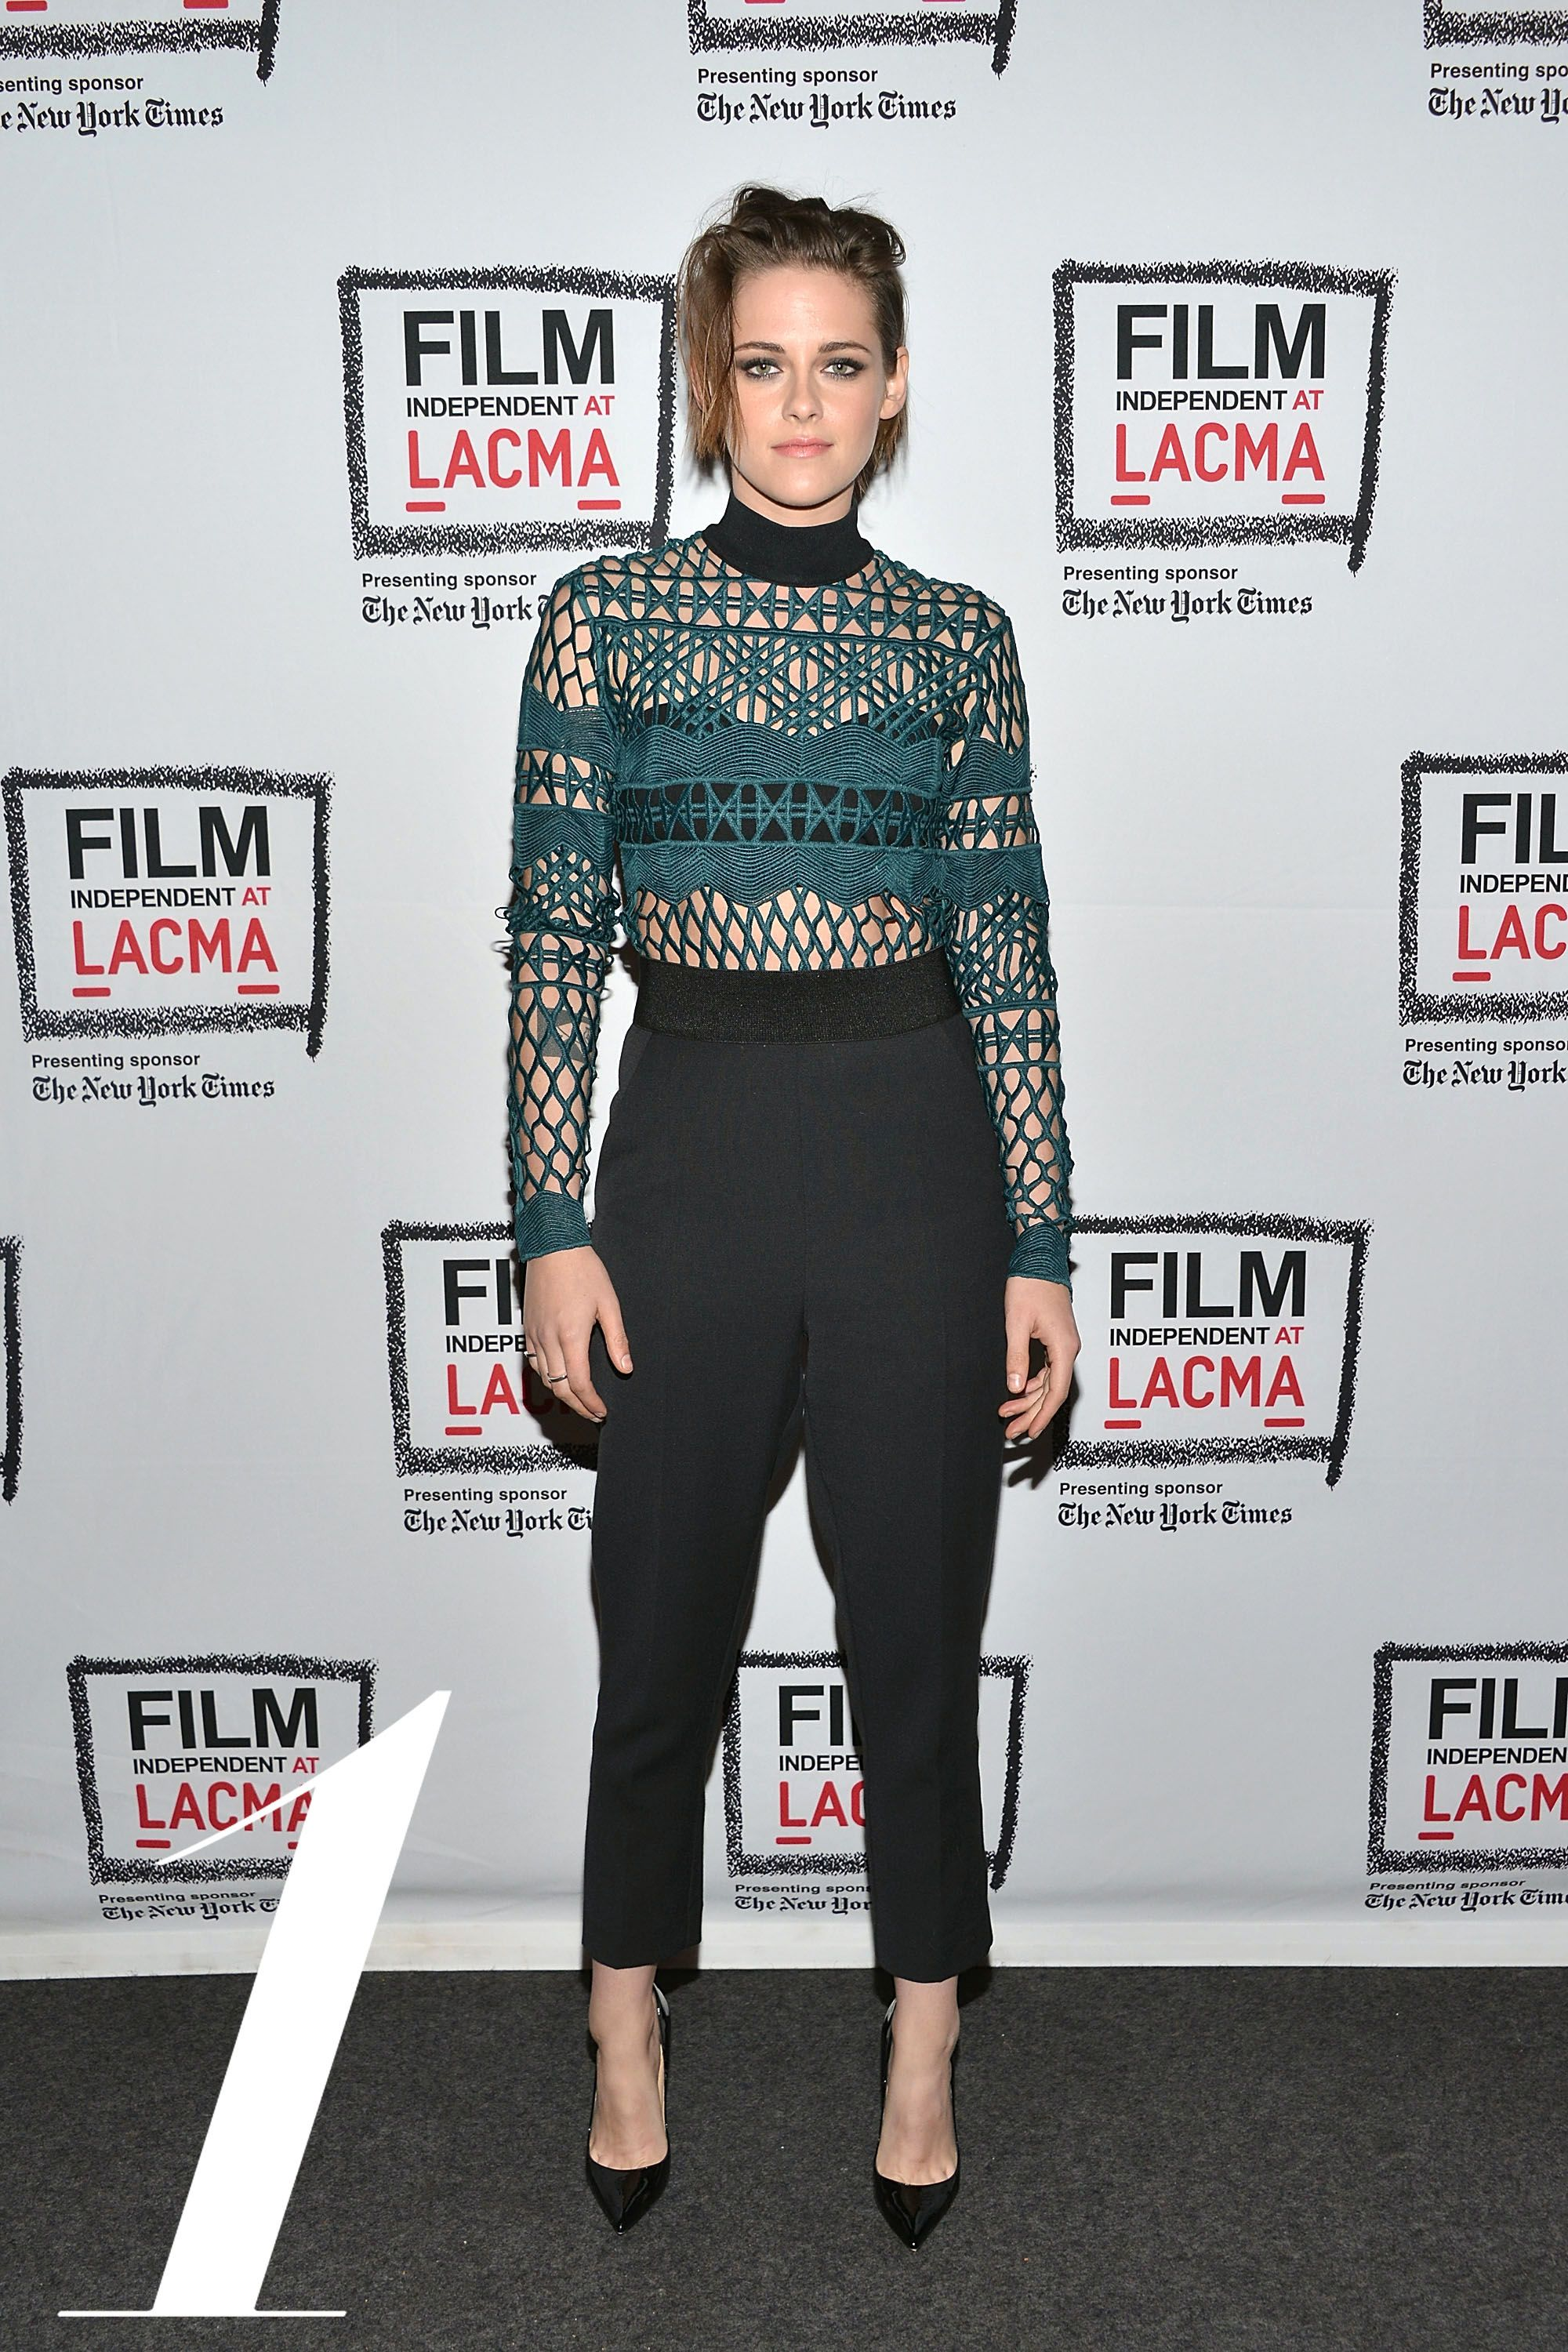 LOS ANGELES, CA - APRIL 03:  Kristen Stewart attends the Film Independent at LACMA screening and Q&A of 'Clouds Of Sils Maria' at Bing Theatre At LACMA on April 3, 2015 in Los Angeles, California.  (Photo by Araya Diaz/WireImage)